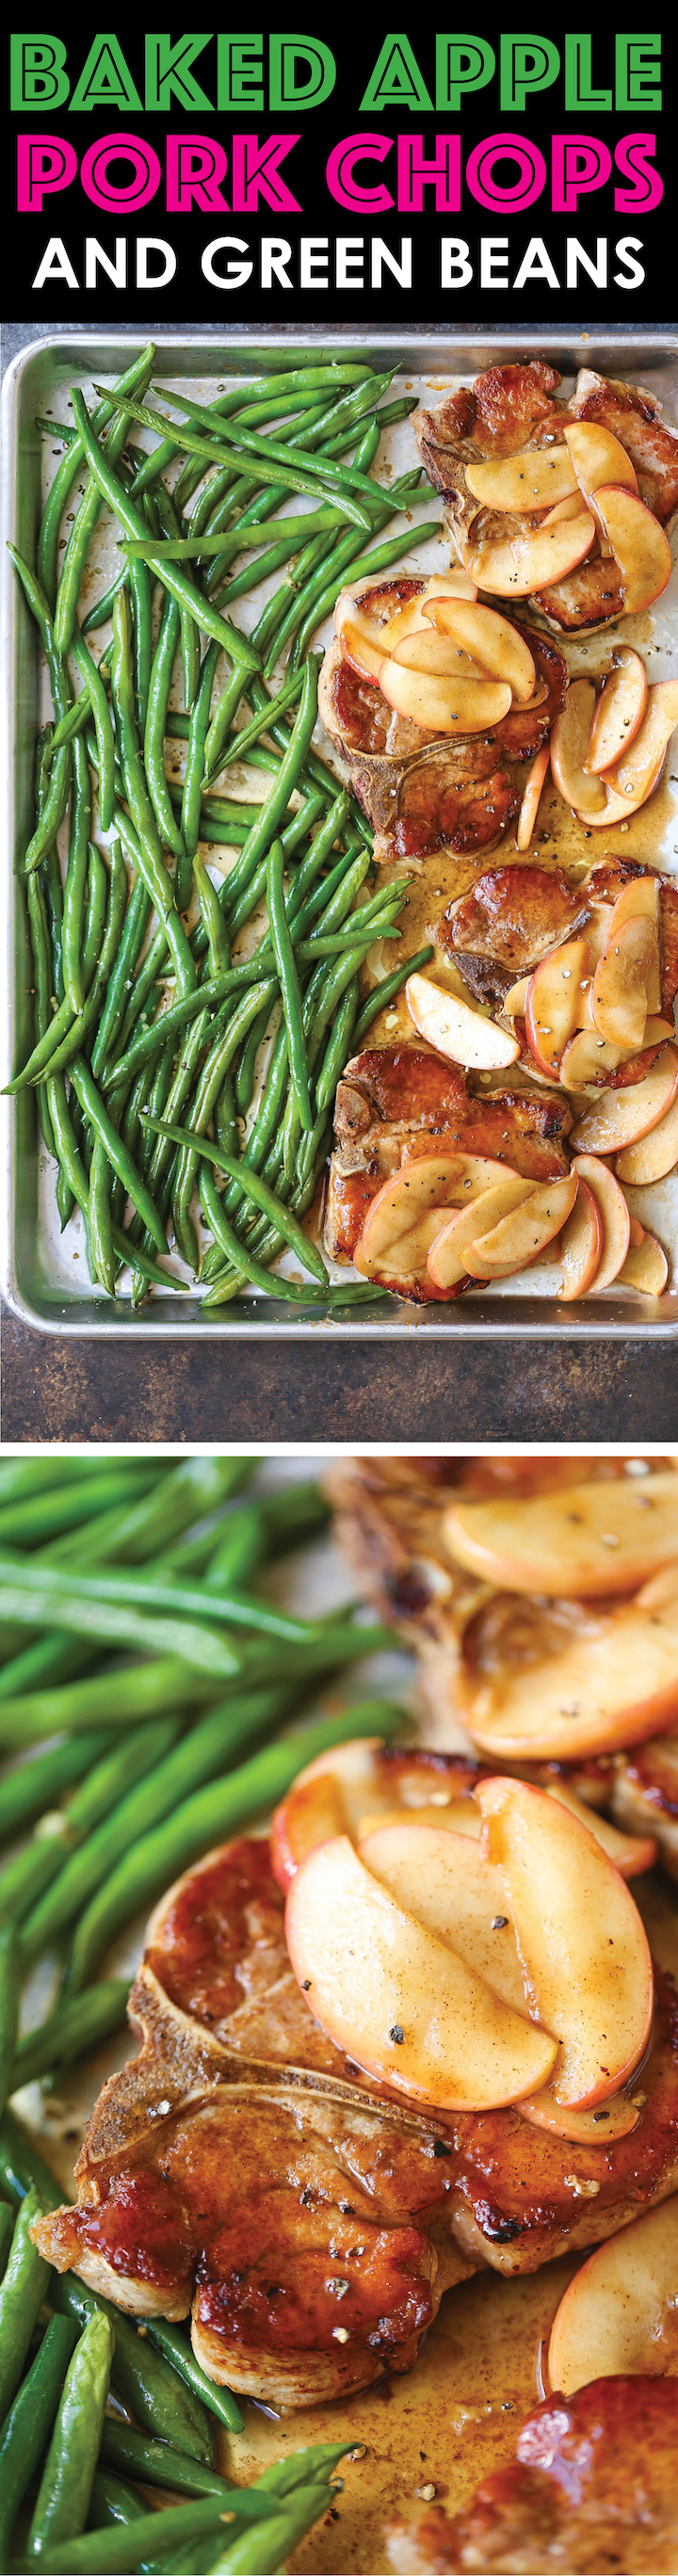 Baked Apple Pork Chops and Green Beans - A quick and easy sheet pan dinner that can be assembled ahead of time and baked right before serving. Easy peasy!